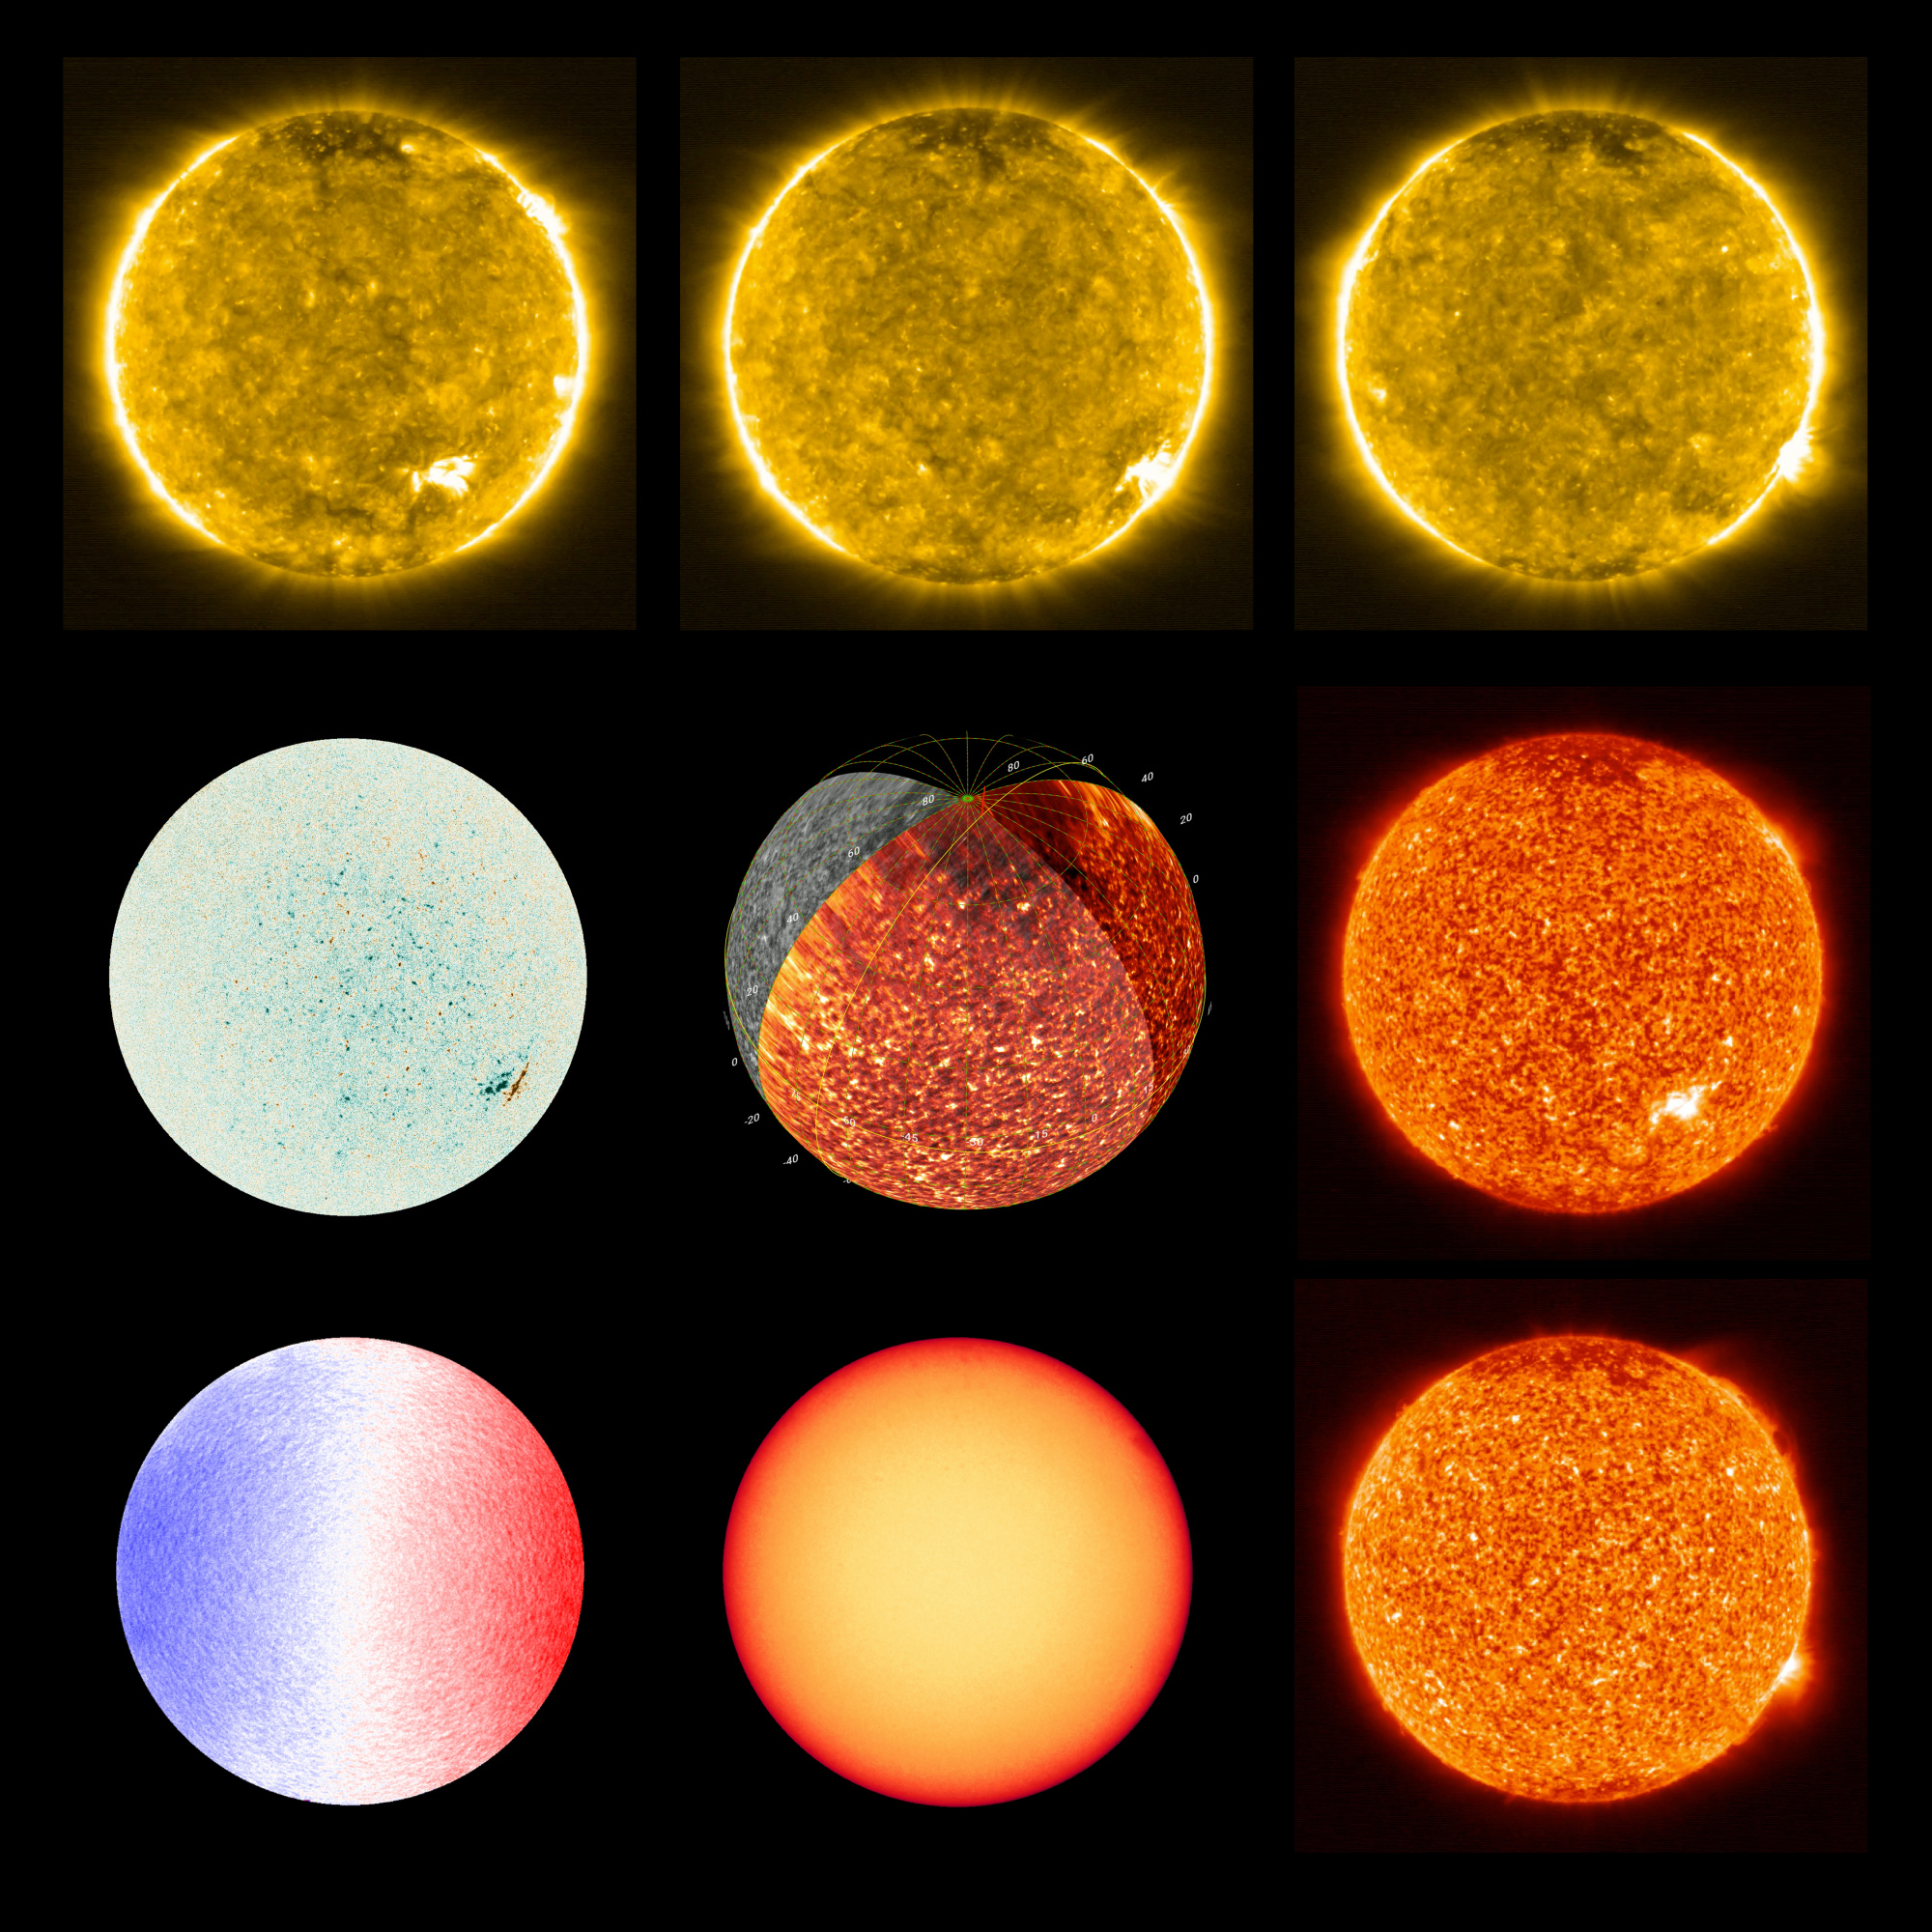 The_many_faces_of_the_Sun_from_Solar_Orbiter_s_EUI_and_PHI_instruments.jpg